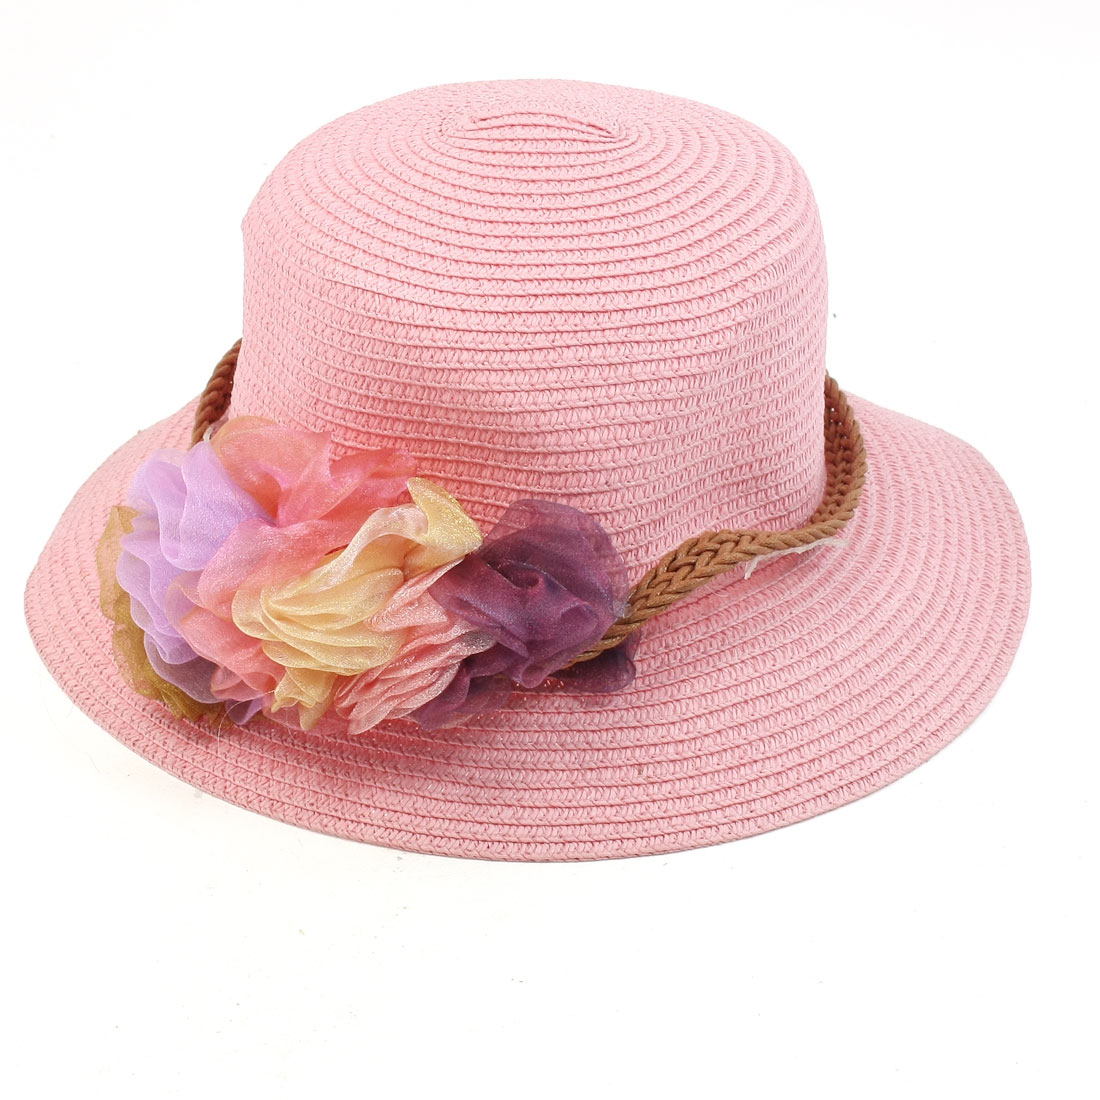 Lady Summer Outdoor Floral Braided Strap Accent Cloche Hat Pink S Size